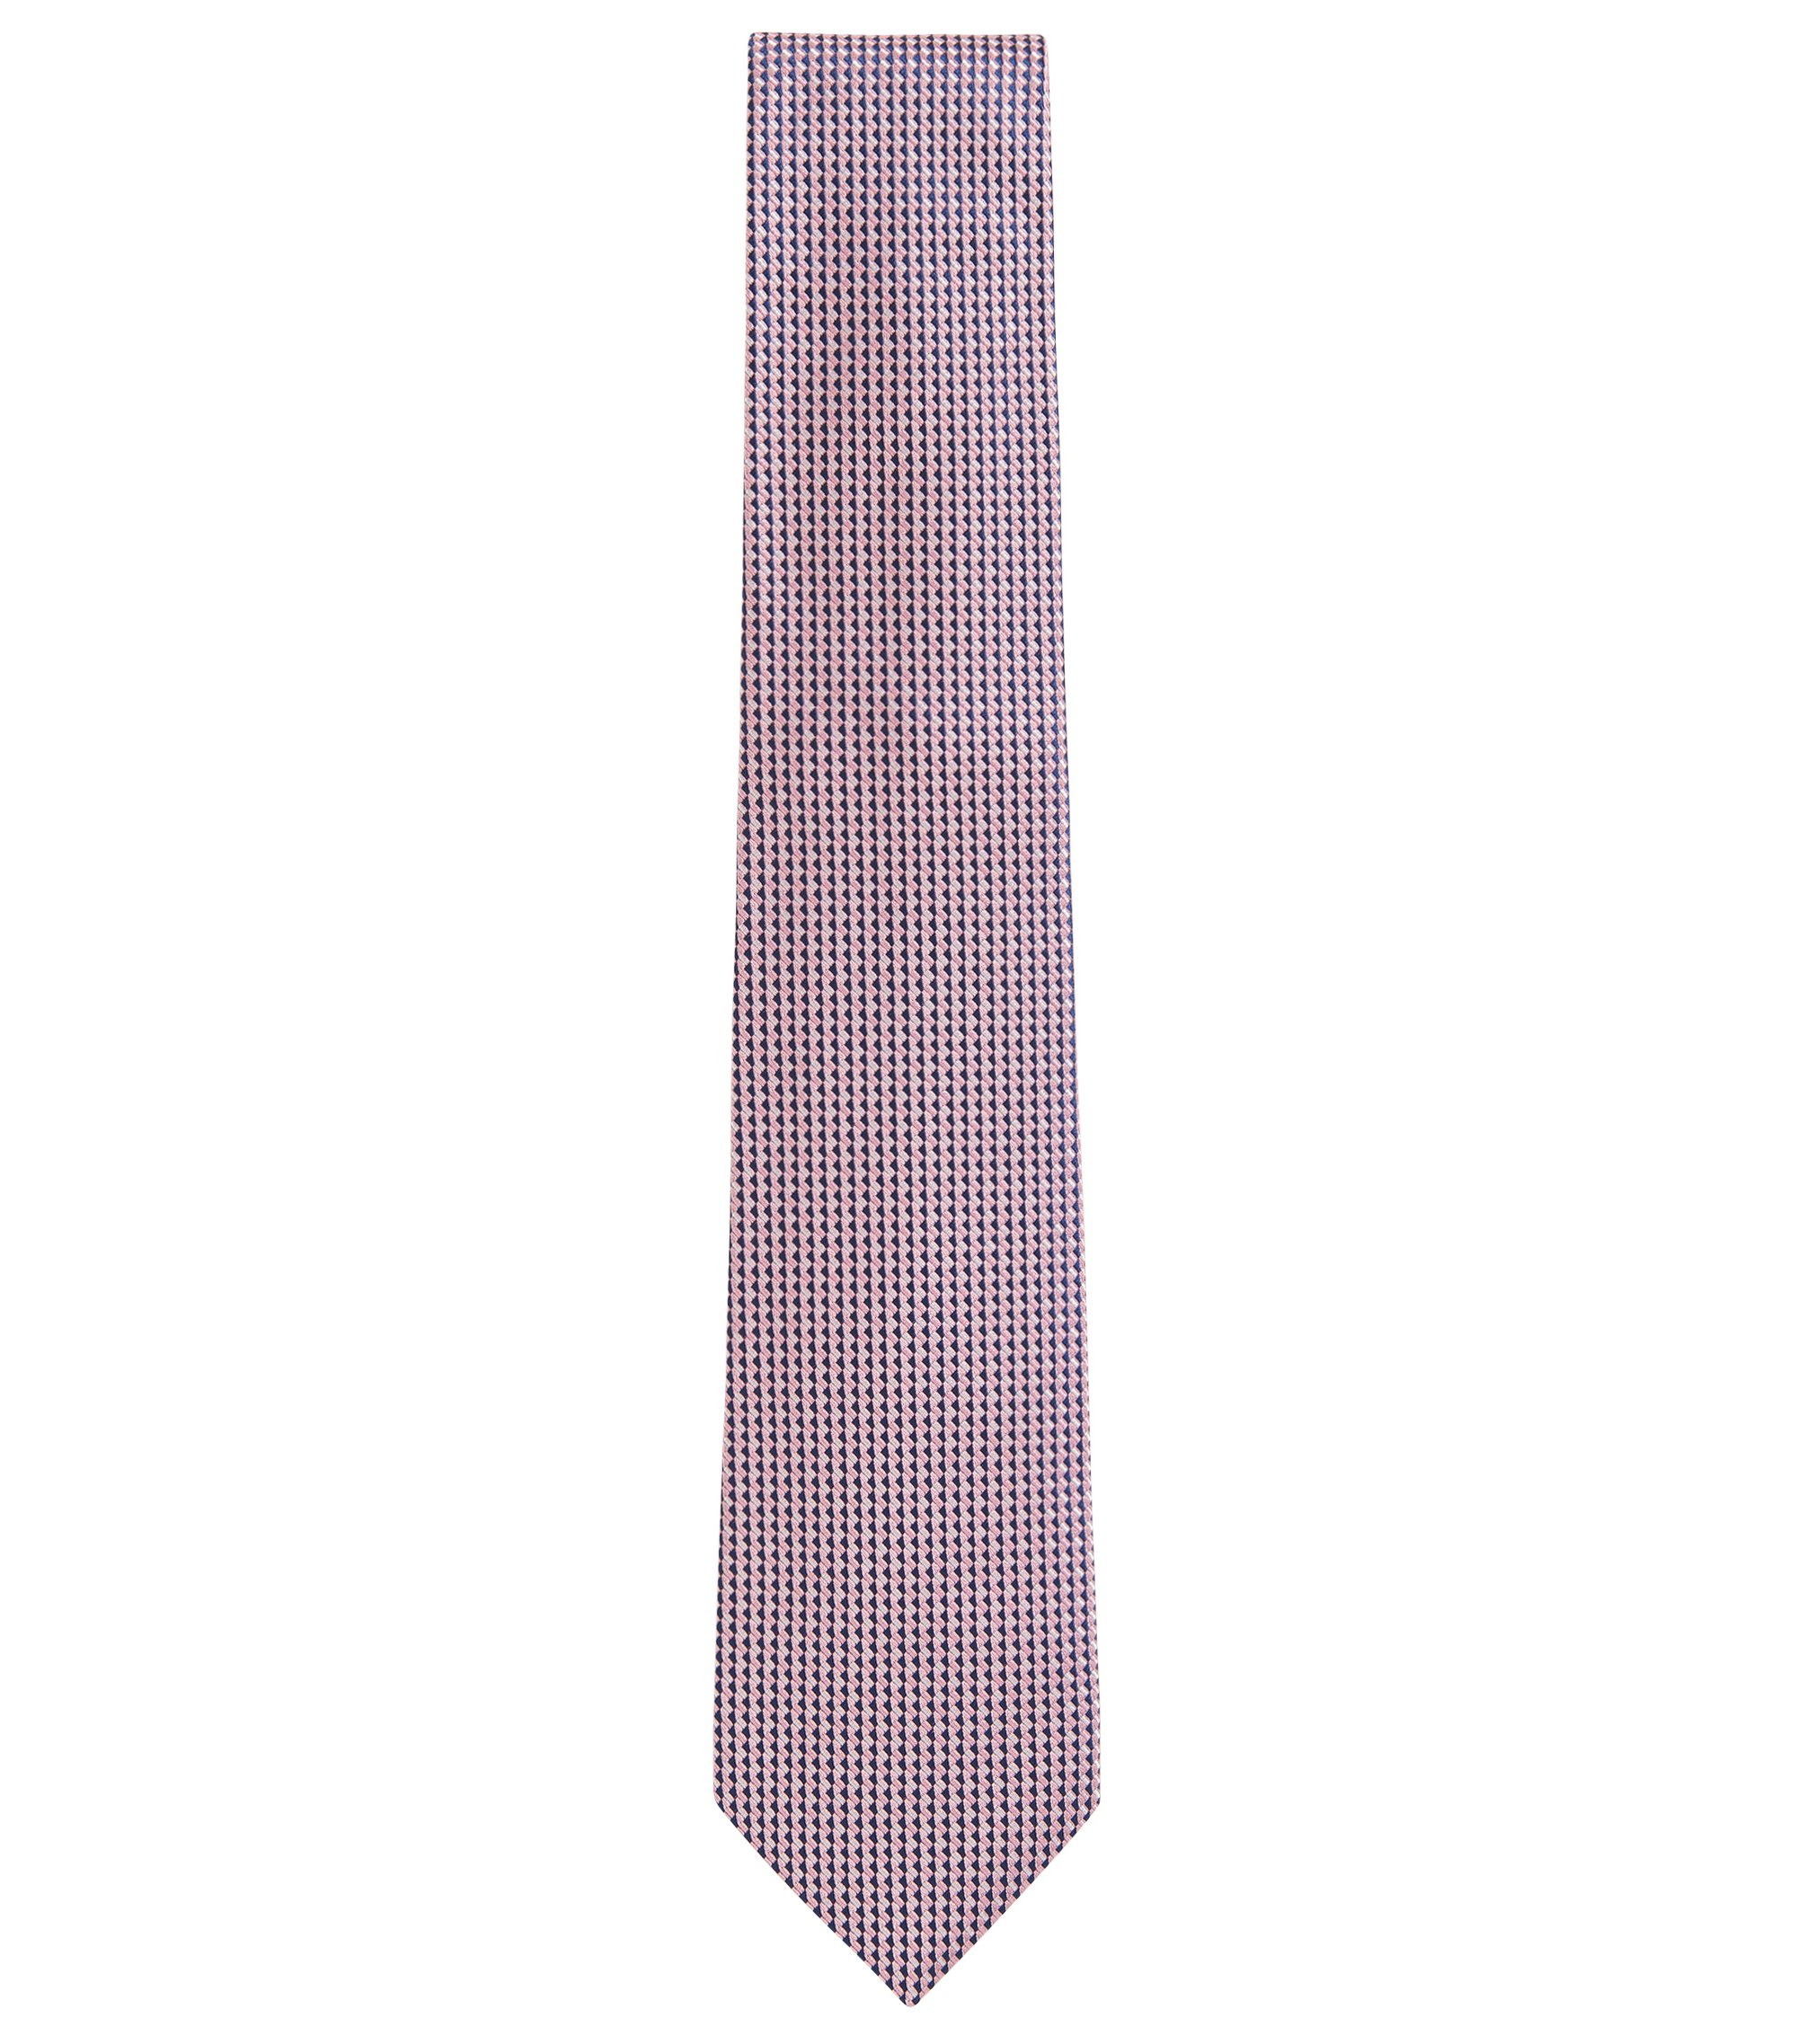 Hand-made tie in patterned jacquard silk, light pink